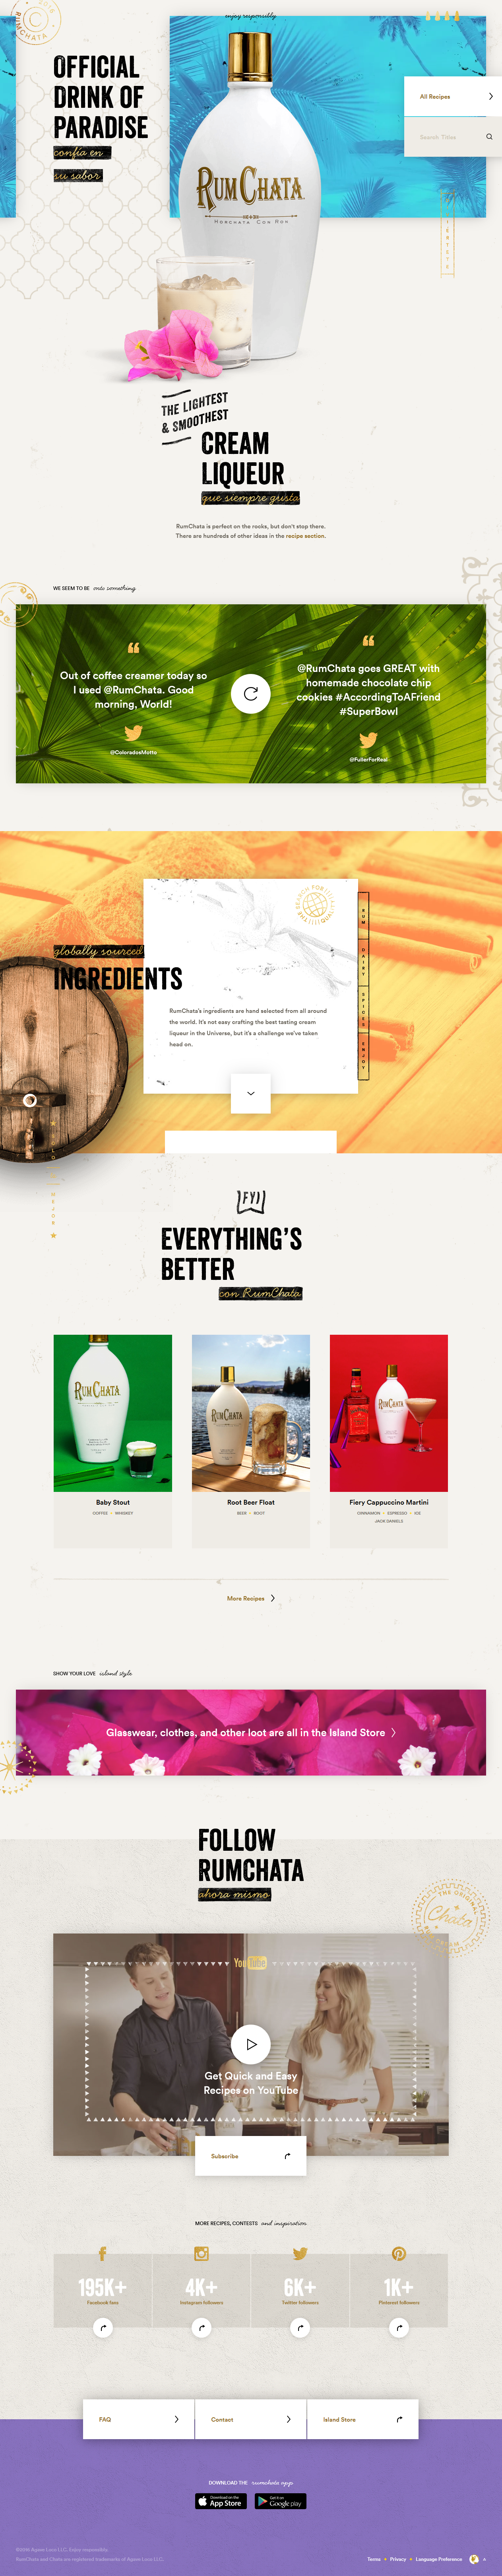 rumchata web design 2016